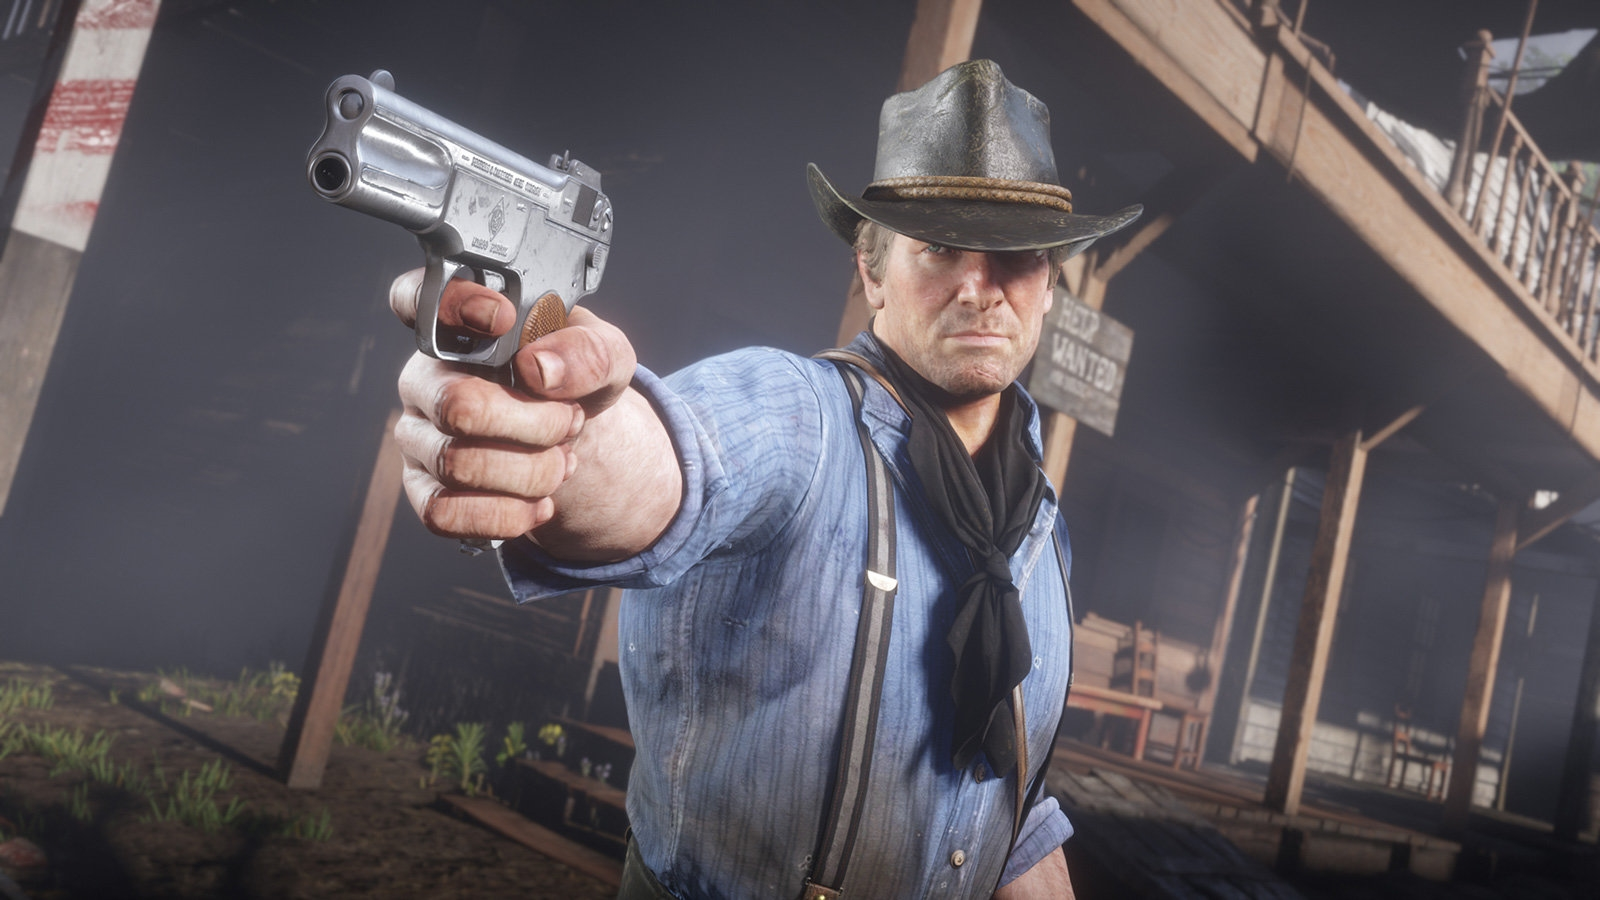 'Red Dead Redemption 2' photo and story modes come to PS4 | DeviceDaily.com